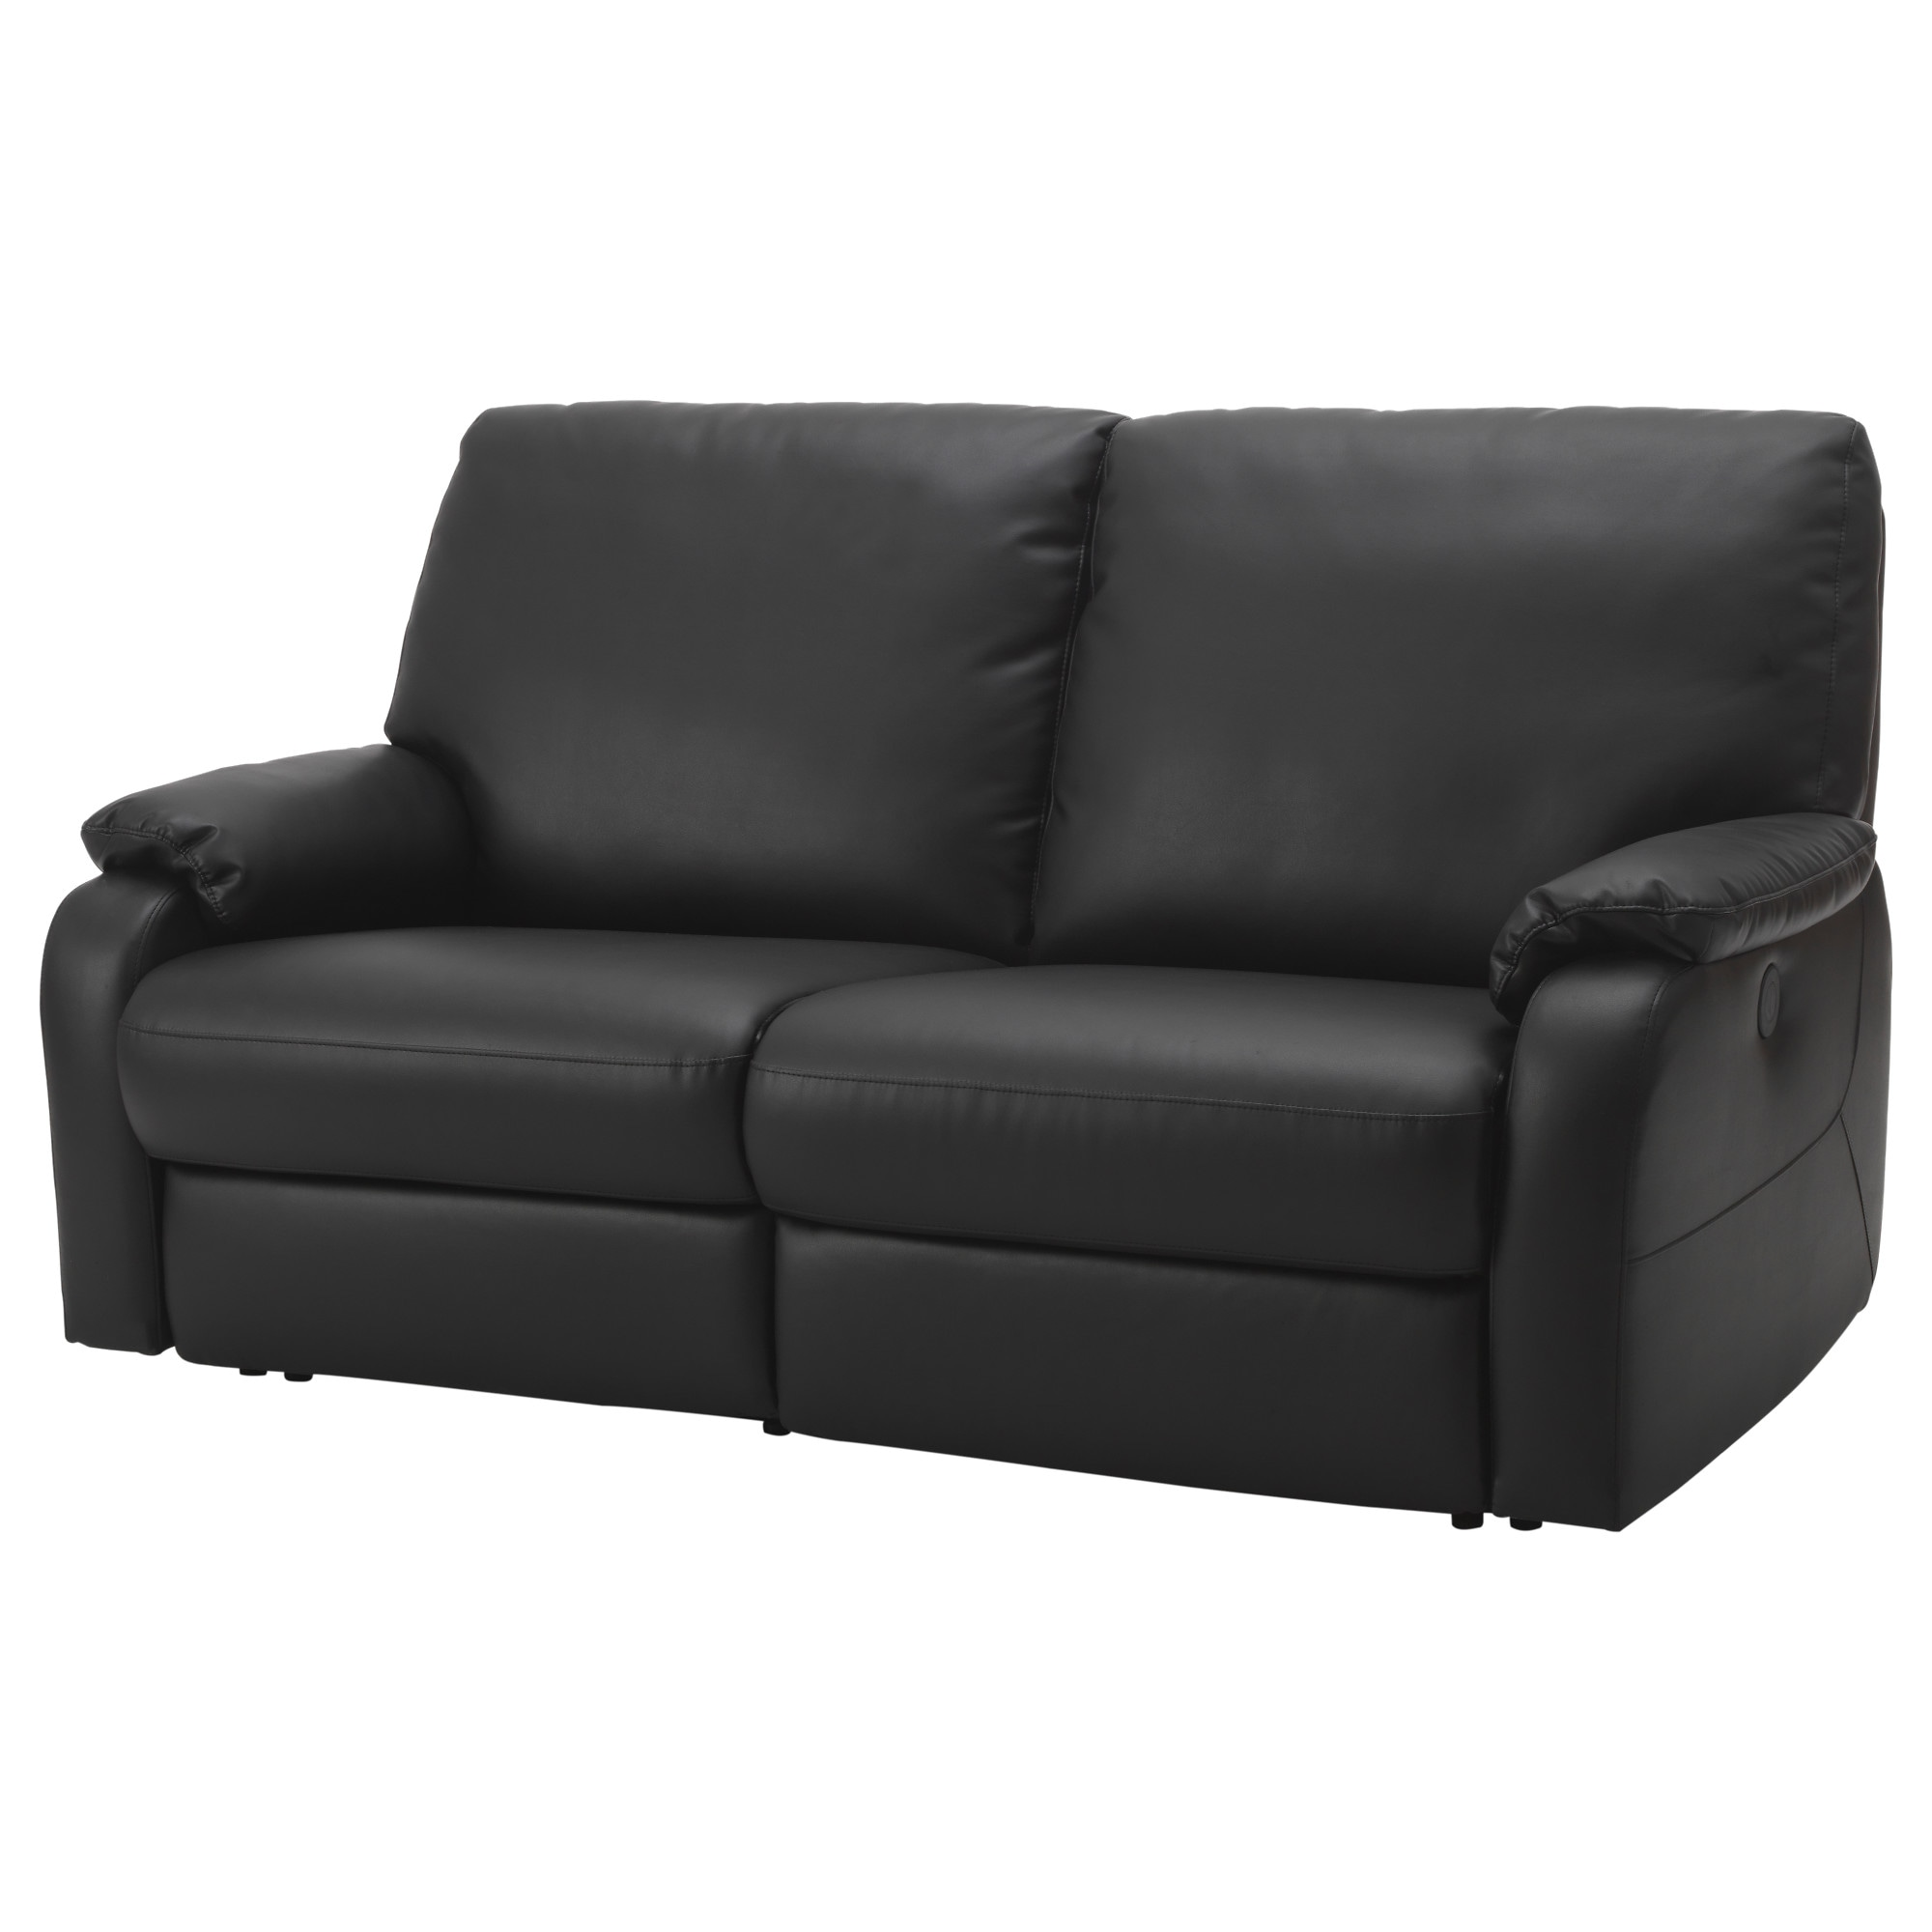 Ikea Black Leather Sofa Leather Faux Couches Chairs